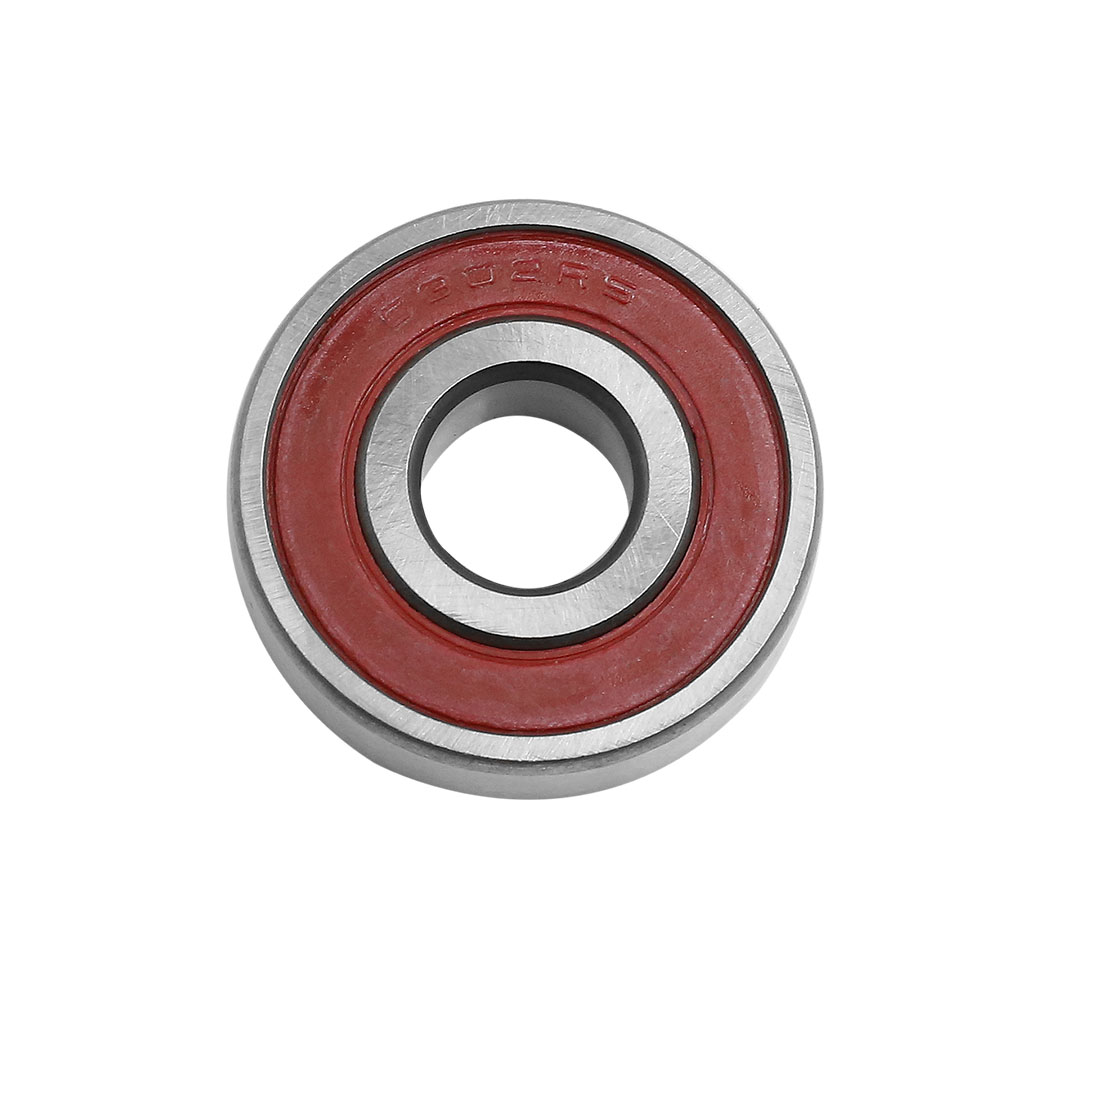 Universal 6302RS Deep Groove Rubber Sealed Shielded Ball Bearing 42 x 15 x 13mm - image 1 of 2